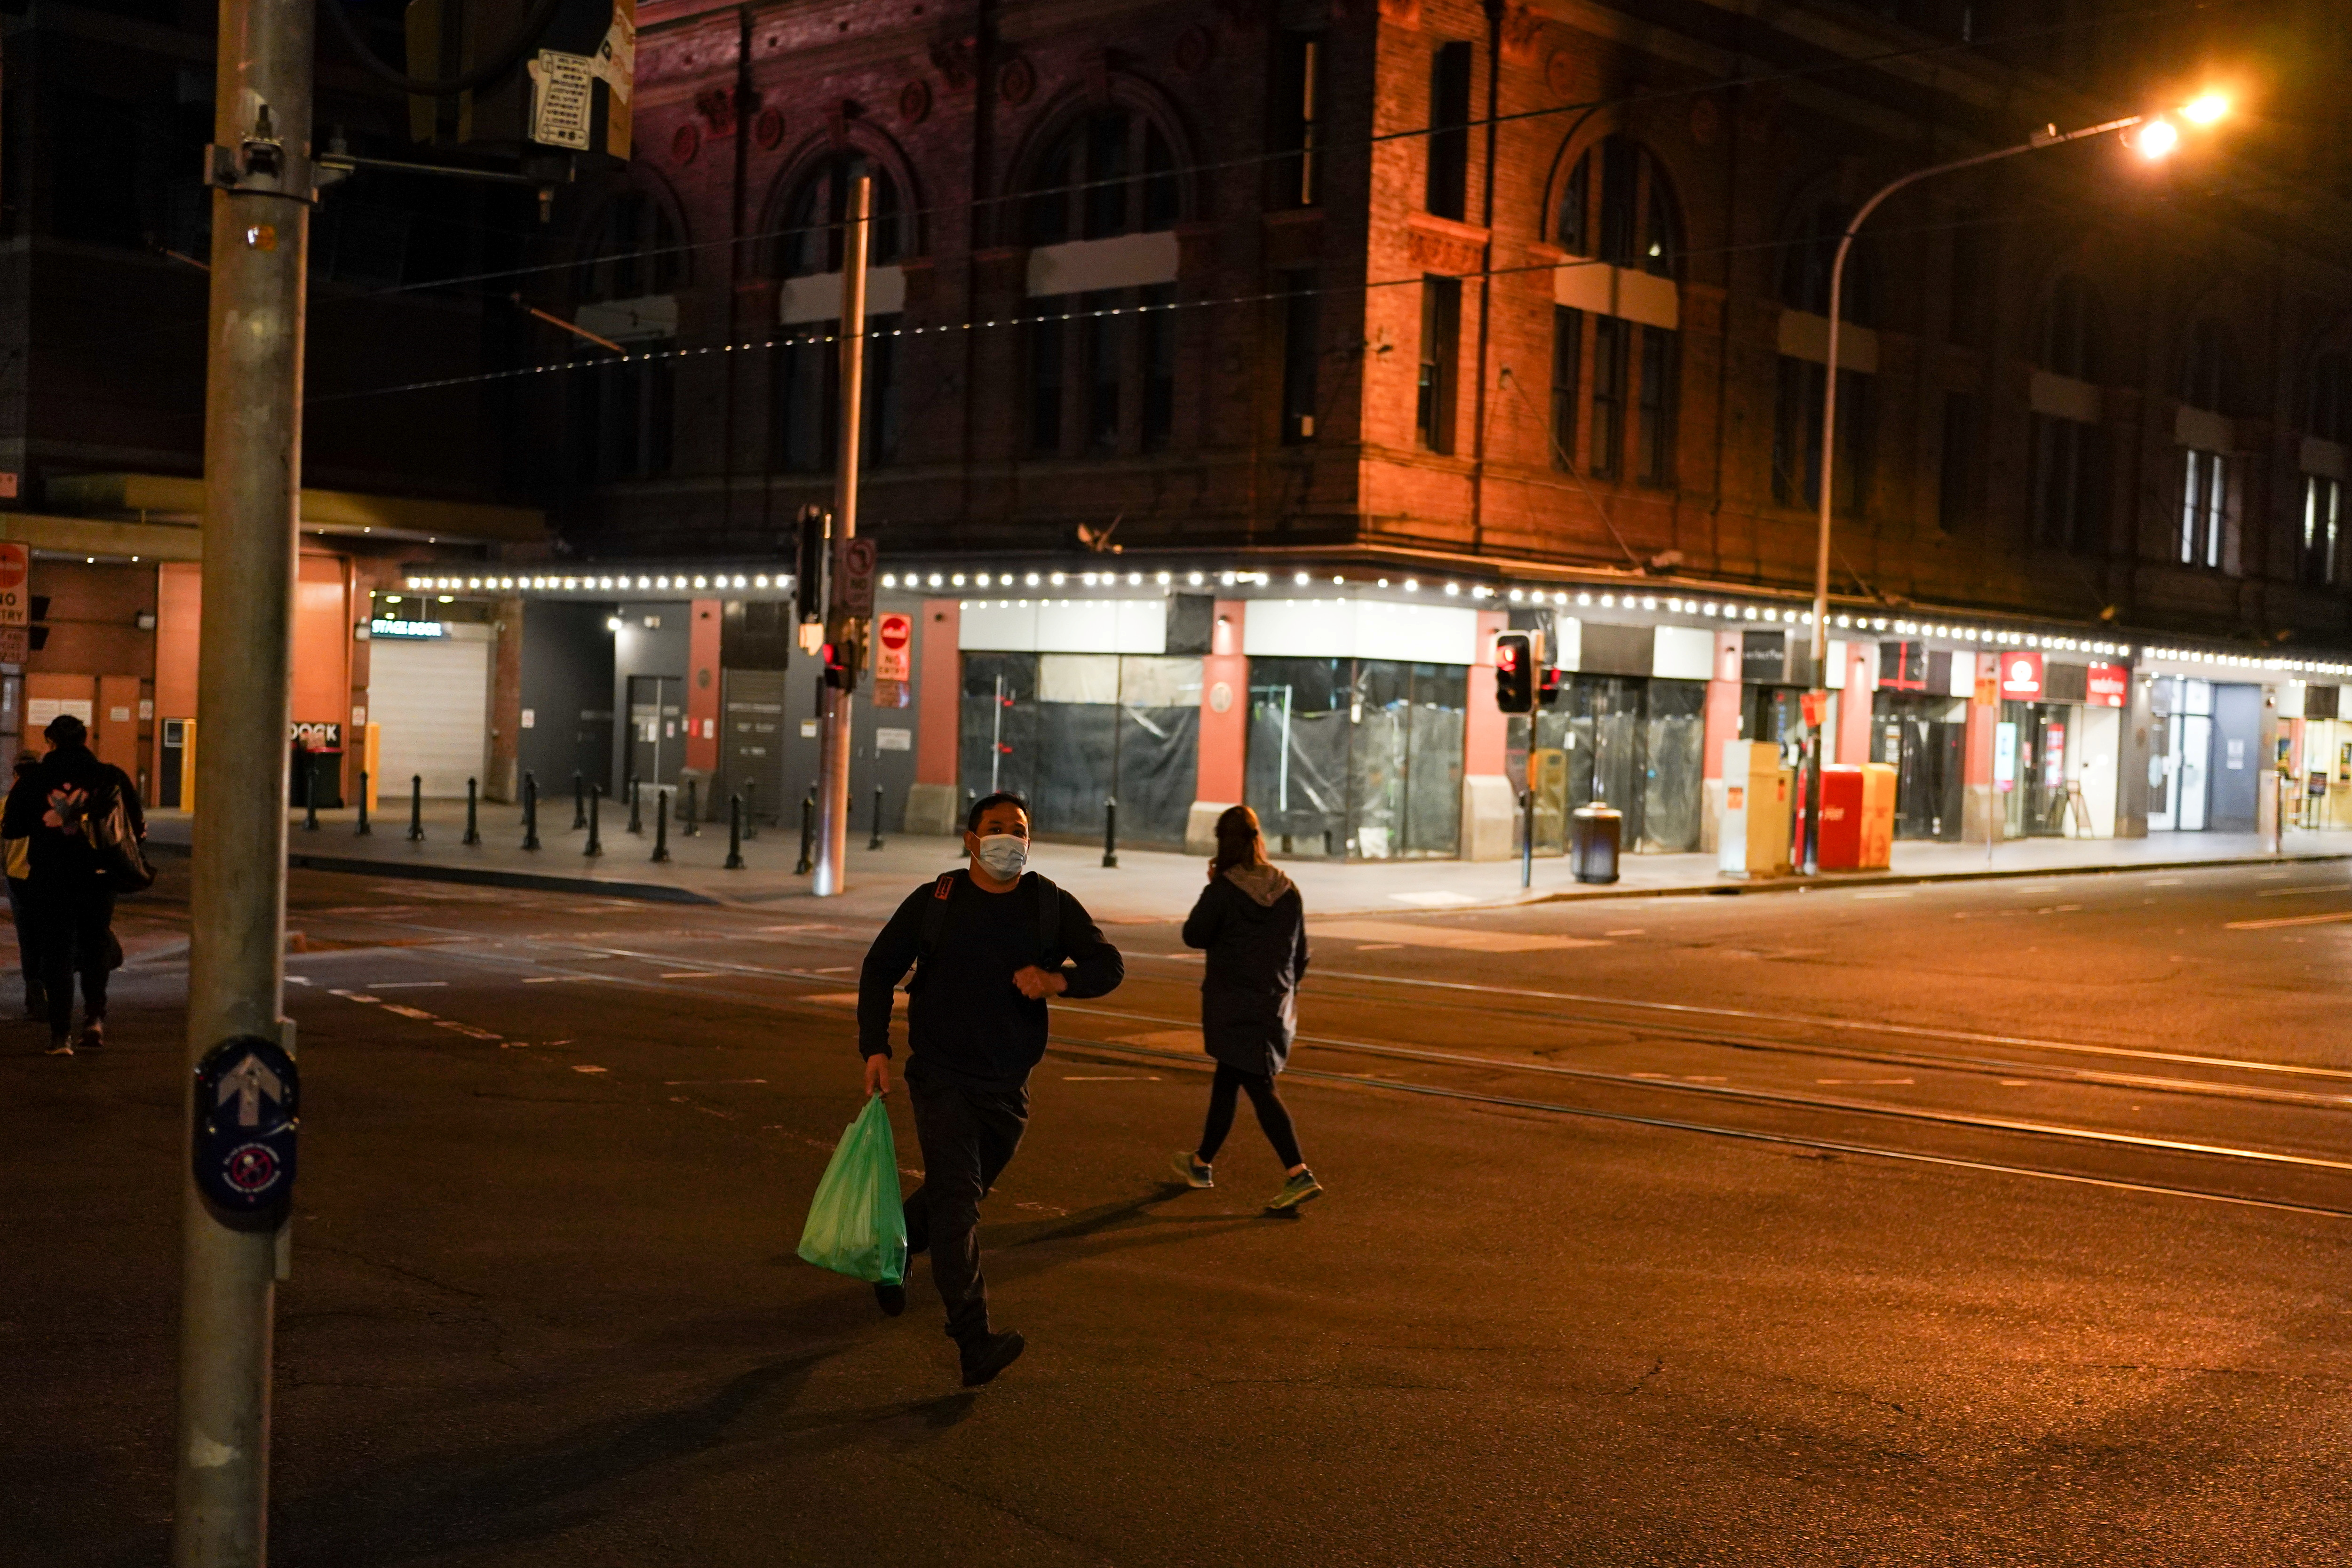 A man wearing a protective face mask jogs across a quiet city centre street during a lockdown to curb the spread of a coronavirus disease (COVID-19) outbreak in Sydney, Australia, August 12, 2021.  REUTERS/Loren Elliott